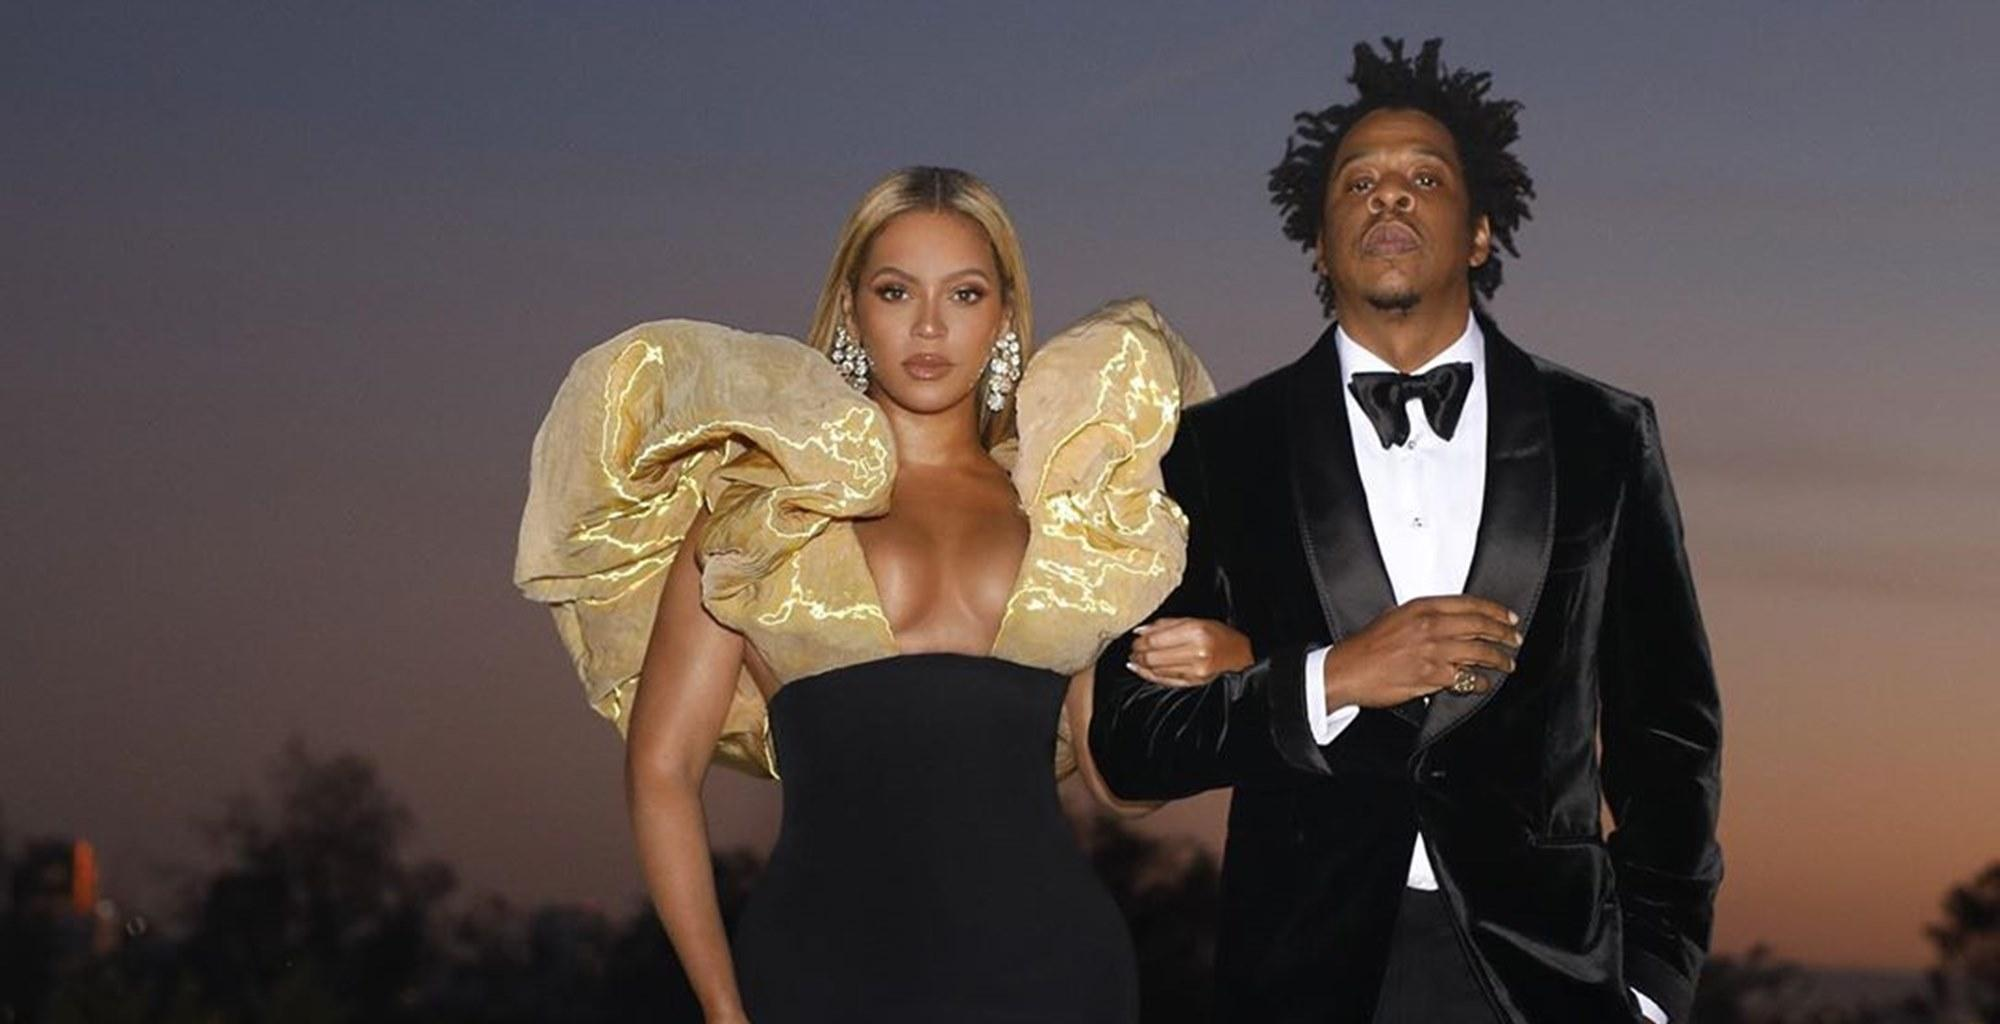 Jay-Z Attempts To Snatch Beyoncé's Fashion Crown In This Hilarious Video